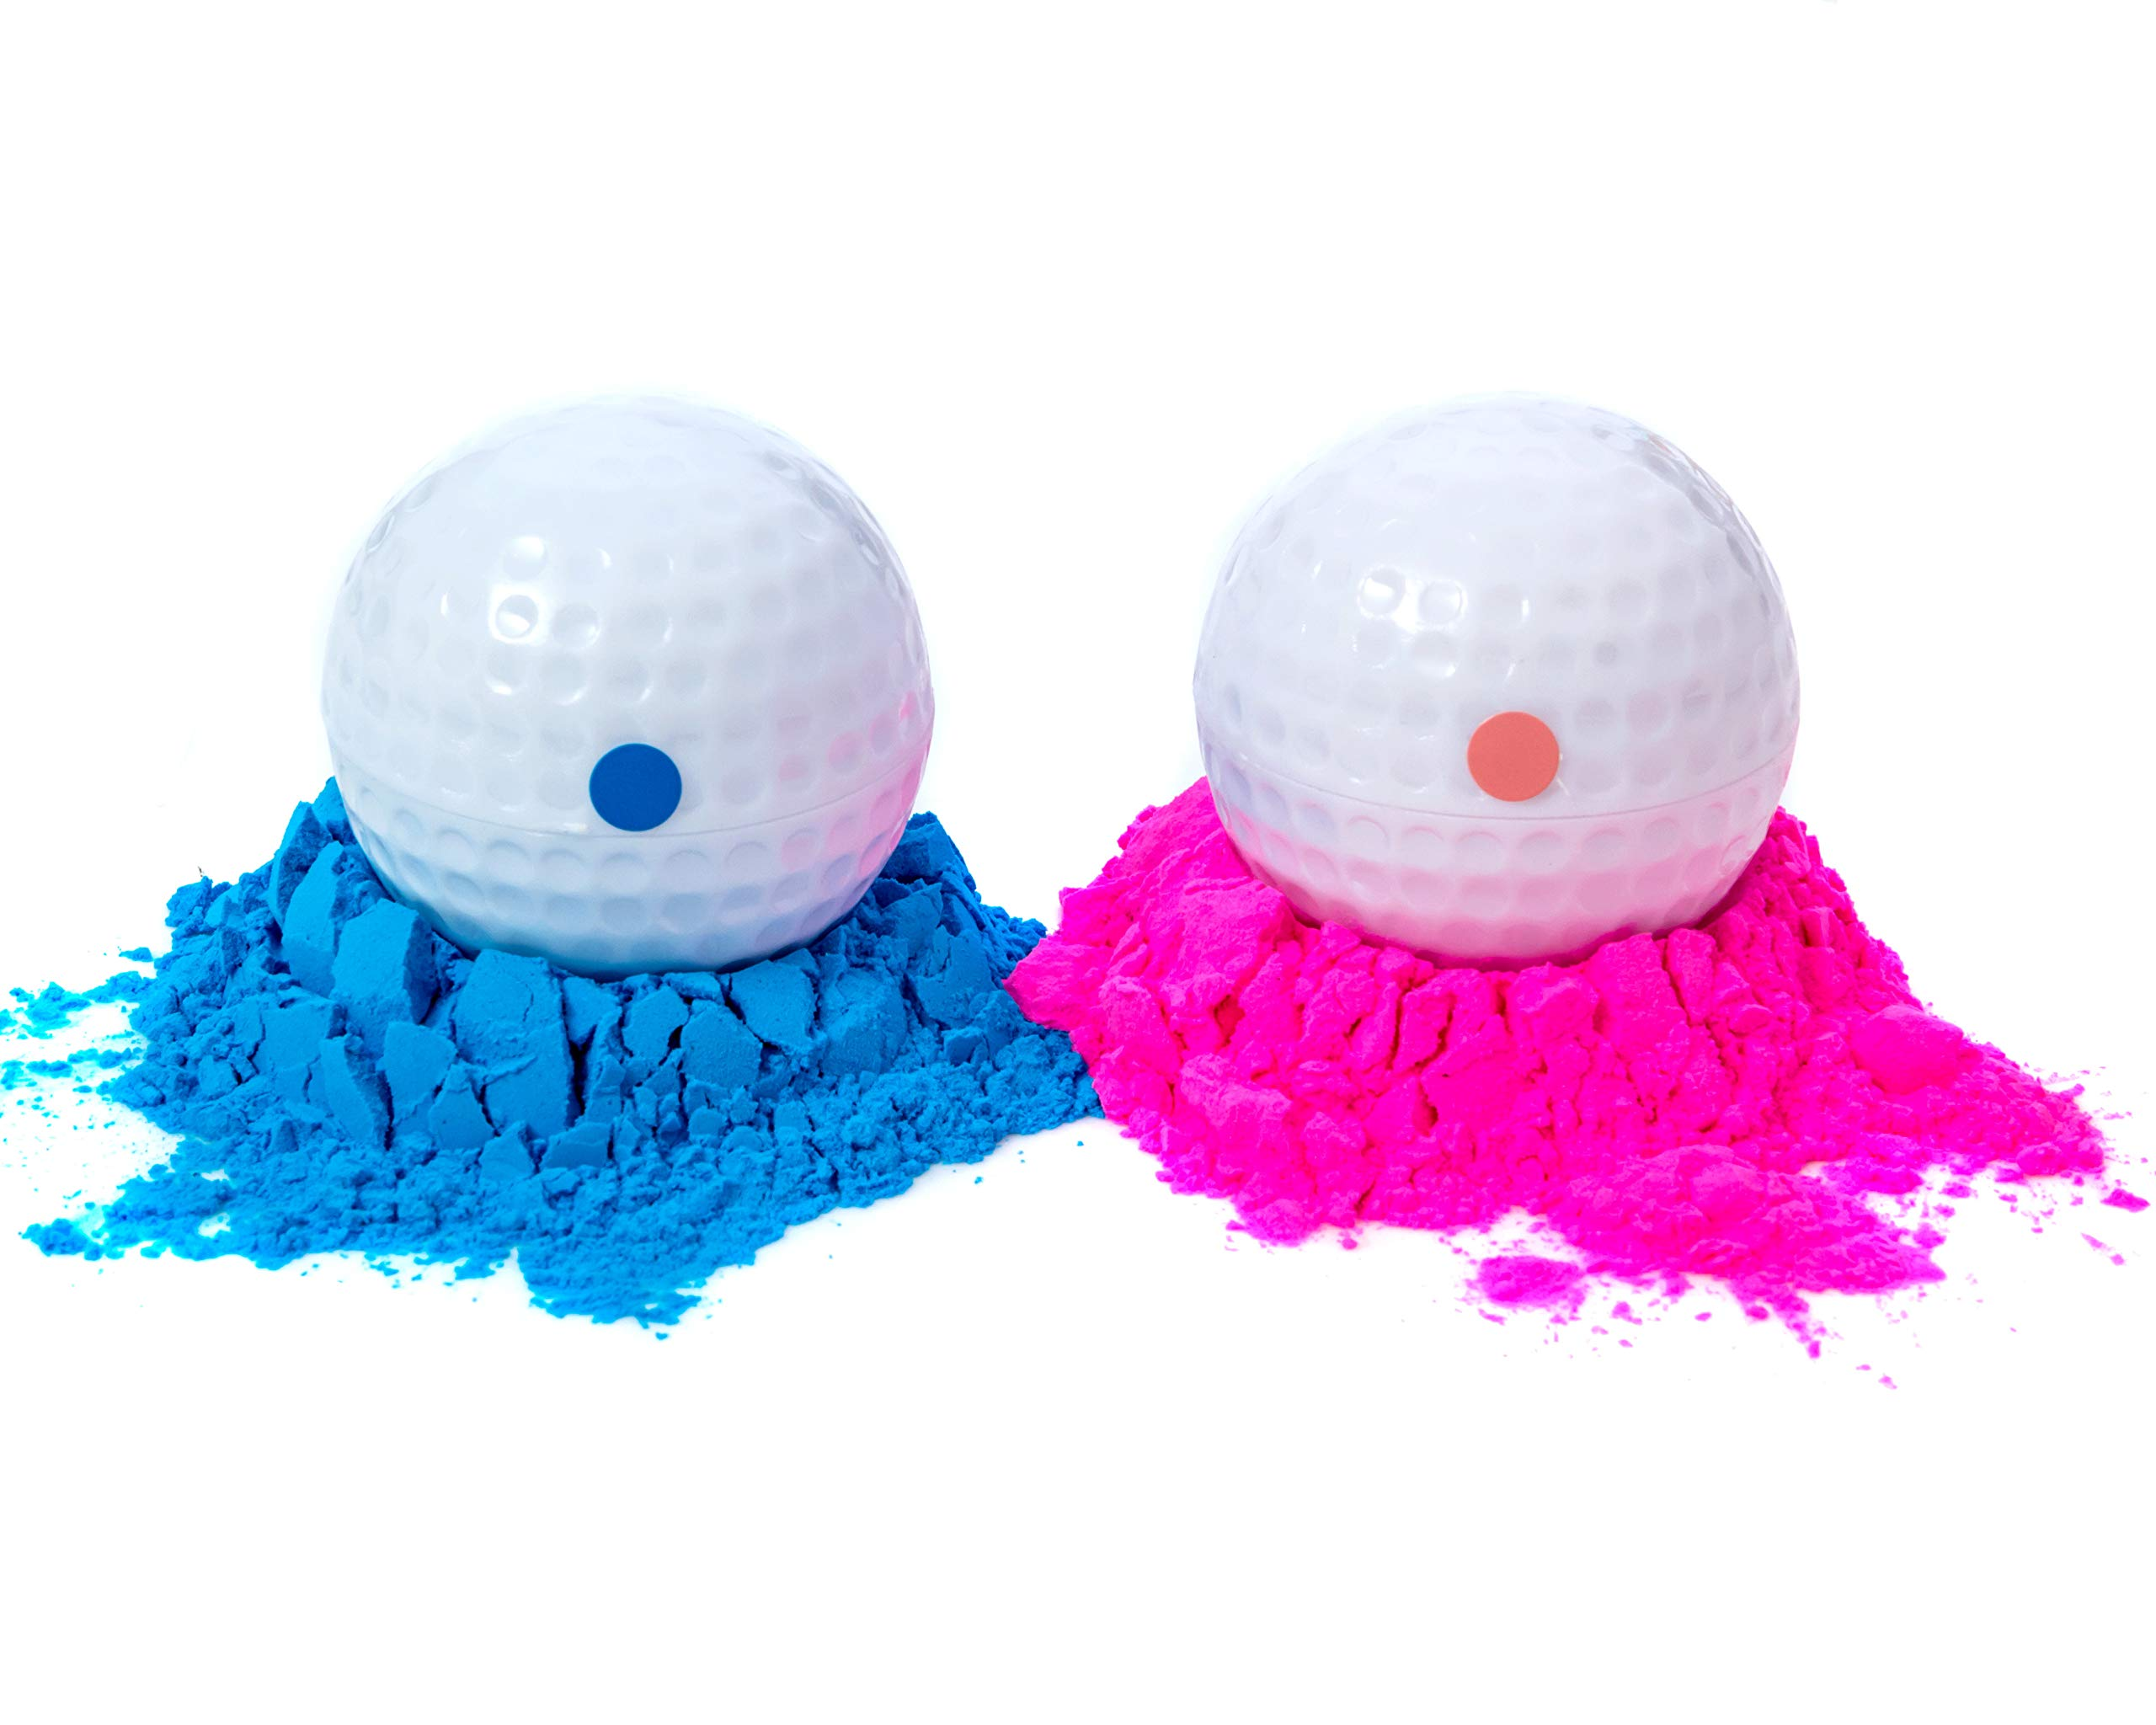 Winsharp Gender Reveal Golf Balls | One Pink, One Blue + Wooden Tee Included | Best Gift for Expecting Parents by Winsharp